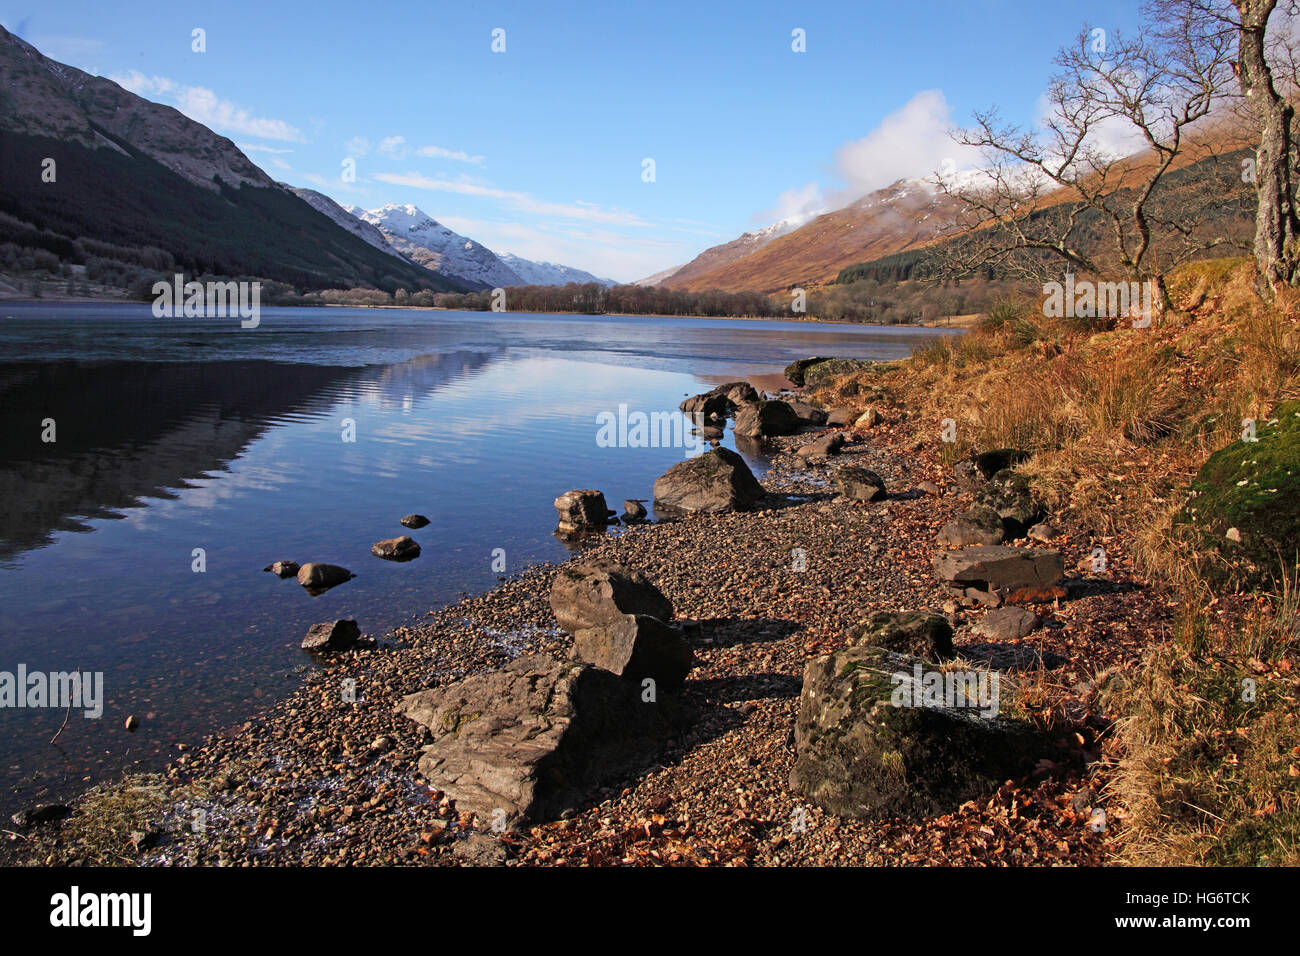 Inverlochlarig Beg,Balquhidder,Sterling,Scotland,UK,Inverlochlarig,Beg,Robert,Rob,Roy,RobRoy,MacGregor,Raibeart,Ruadh,MacGriogair,countryside,rural,grave,burial,place,burial place,mountains,landscape,GoTonySmith,@HotpixUK,Tony,Smith,UK,GB,Great,Britain,United,Kingdom,Scotish,Scottish,Scotch,British,Scotland,Alba,problem,with,problem with,issue with,tourist,tour,travel,visit,famous,hero,martyr,tourism,beautiful,SNP,Scottish National Party,independance,independent,independence,wild,culture,Scots,Scots Culture,Scottish Culture,Historic,history,Historic Scotland,stone,stones,bones,Balquidder,film,Buy Pictures of,Buy Images Of,Images of,Stock Images,Tony Smith,United Kingdom,Great Britain,British Isles,Scottish Nationalism